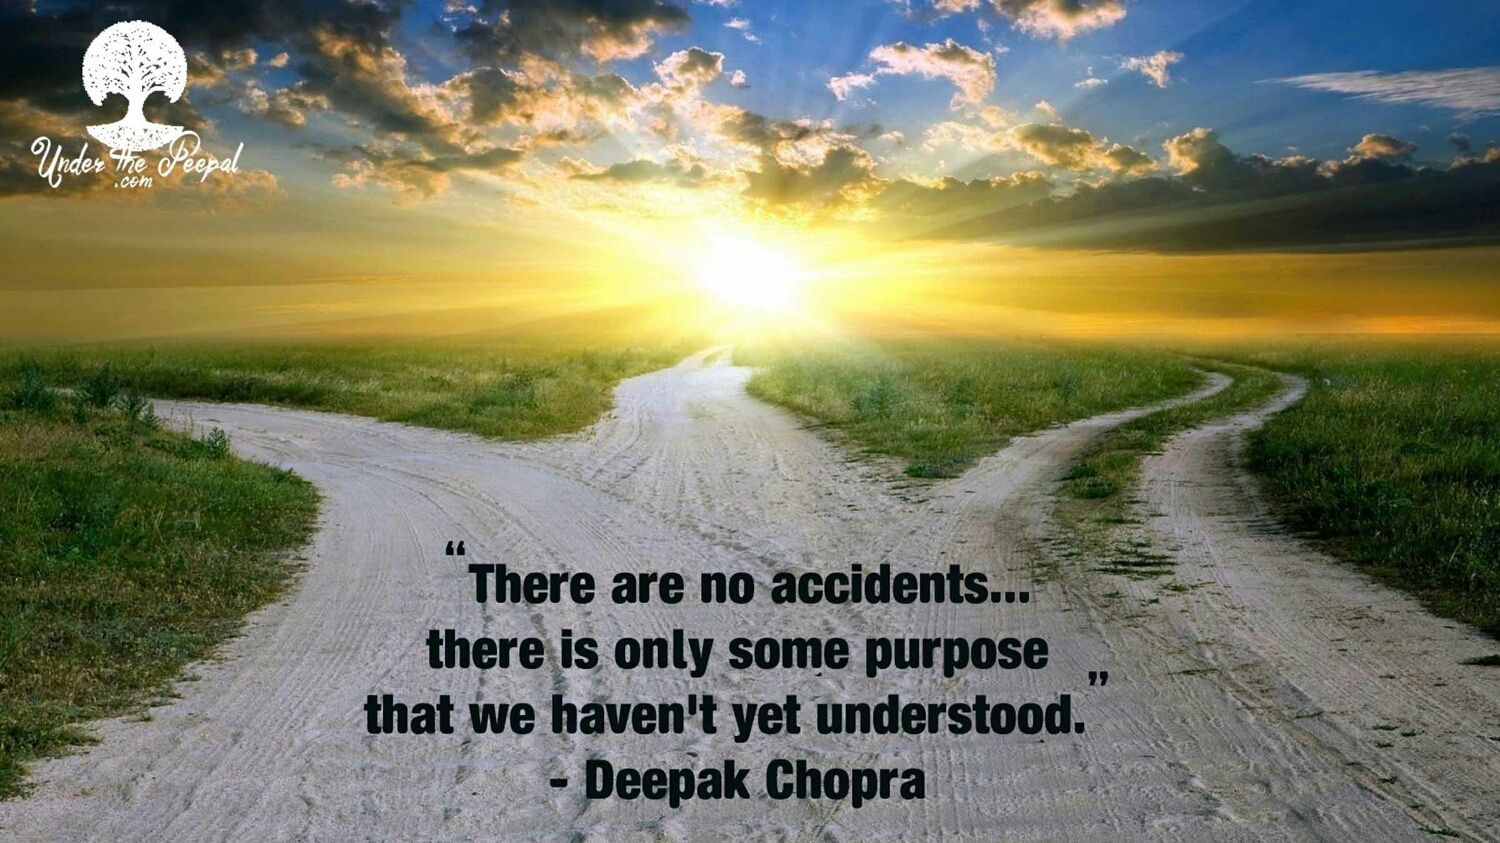 Deepak Chopra Quote- There are no accidents....there is only some purpose we haven't yet understood